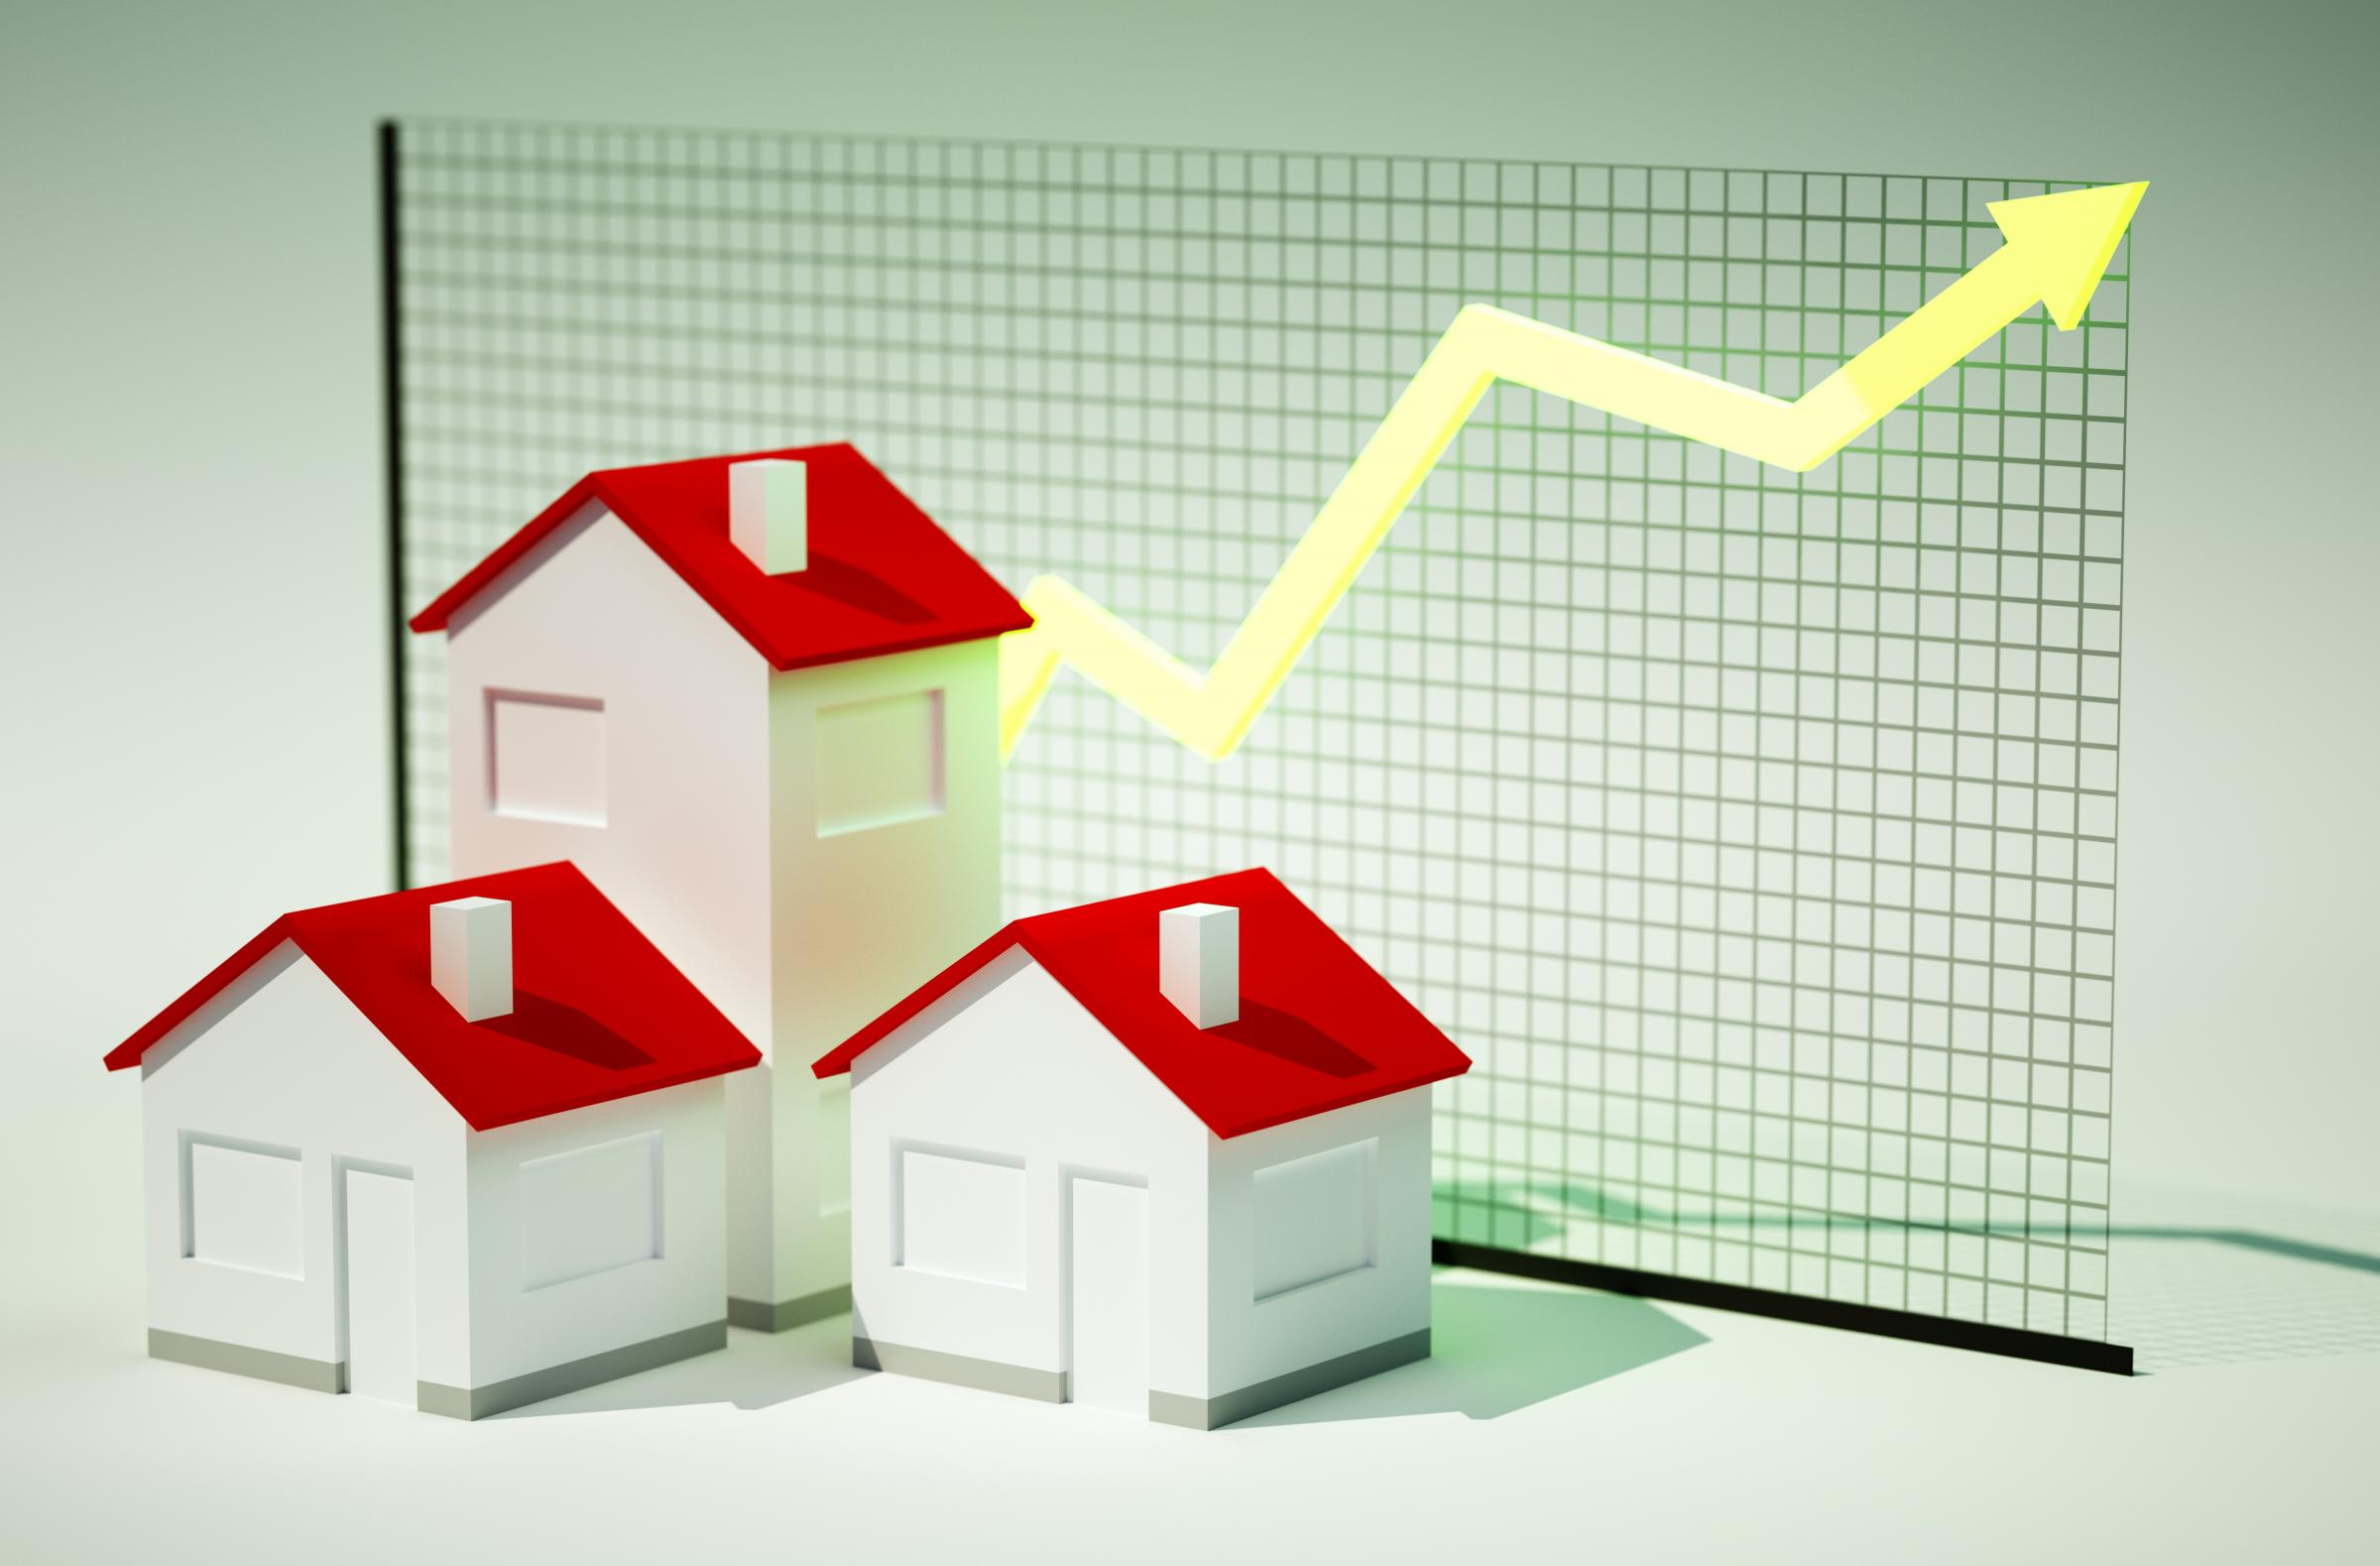 Property News: Signs of market growth